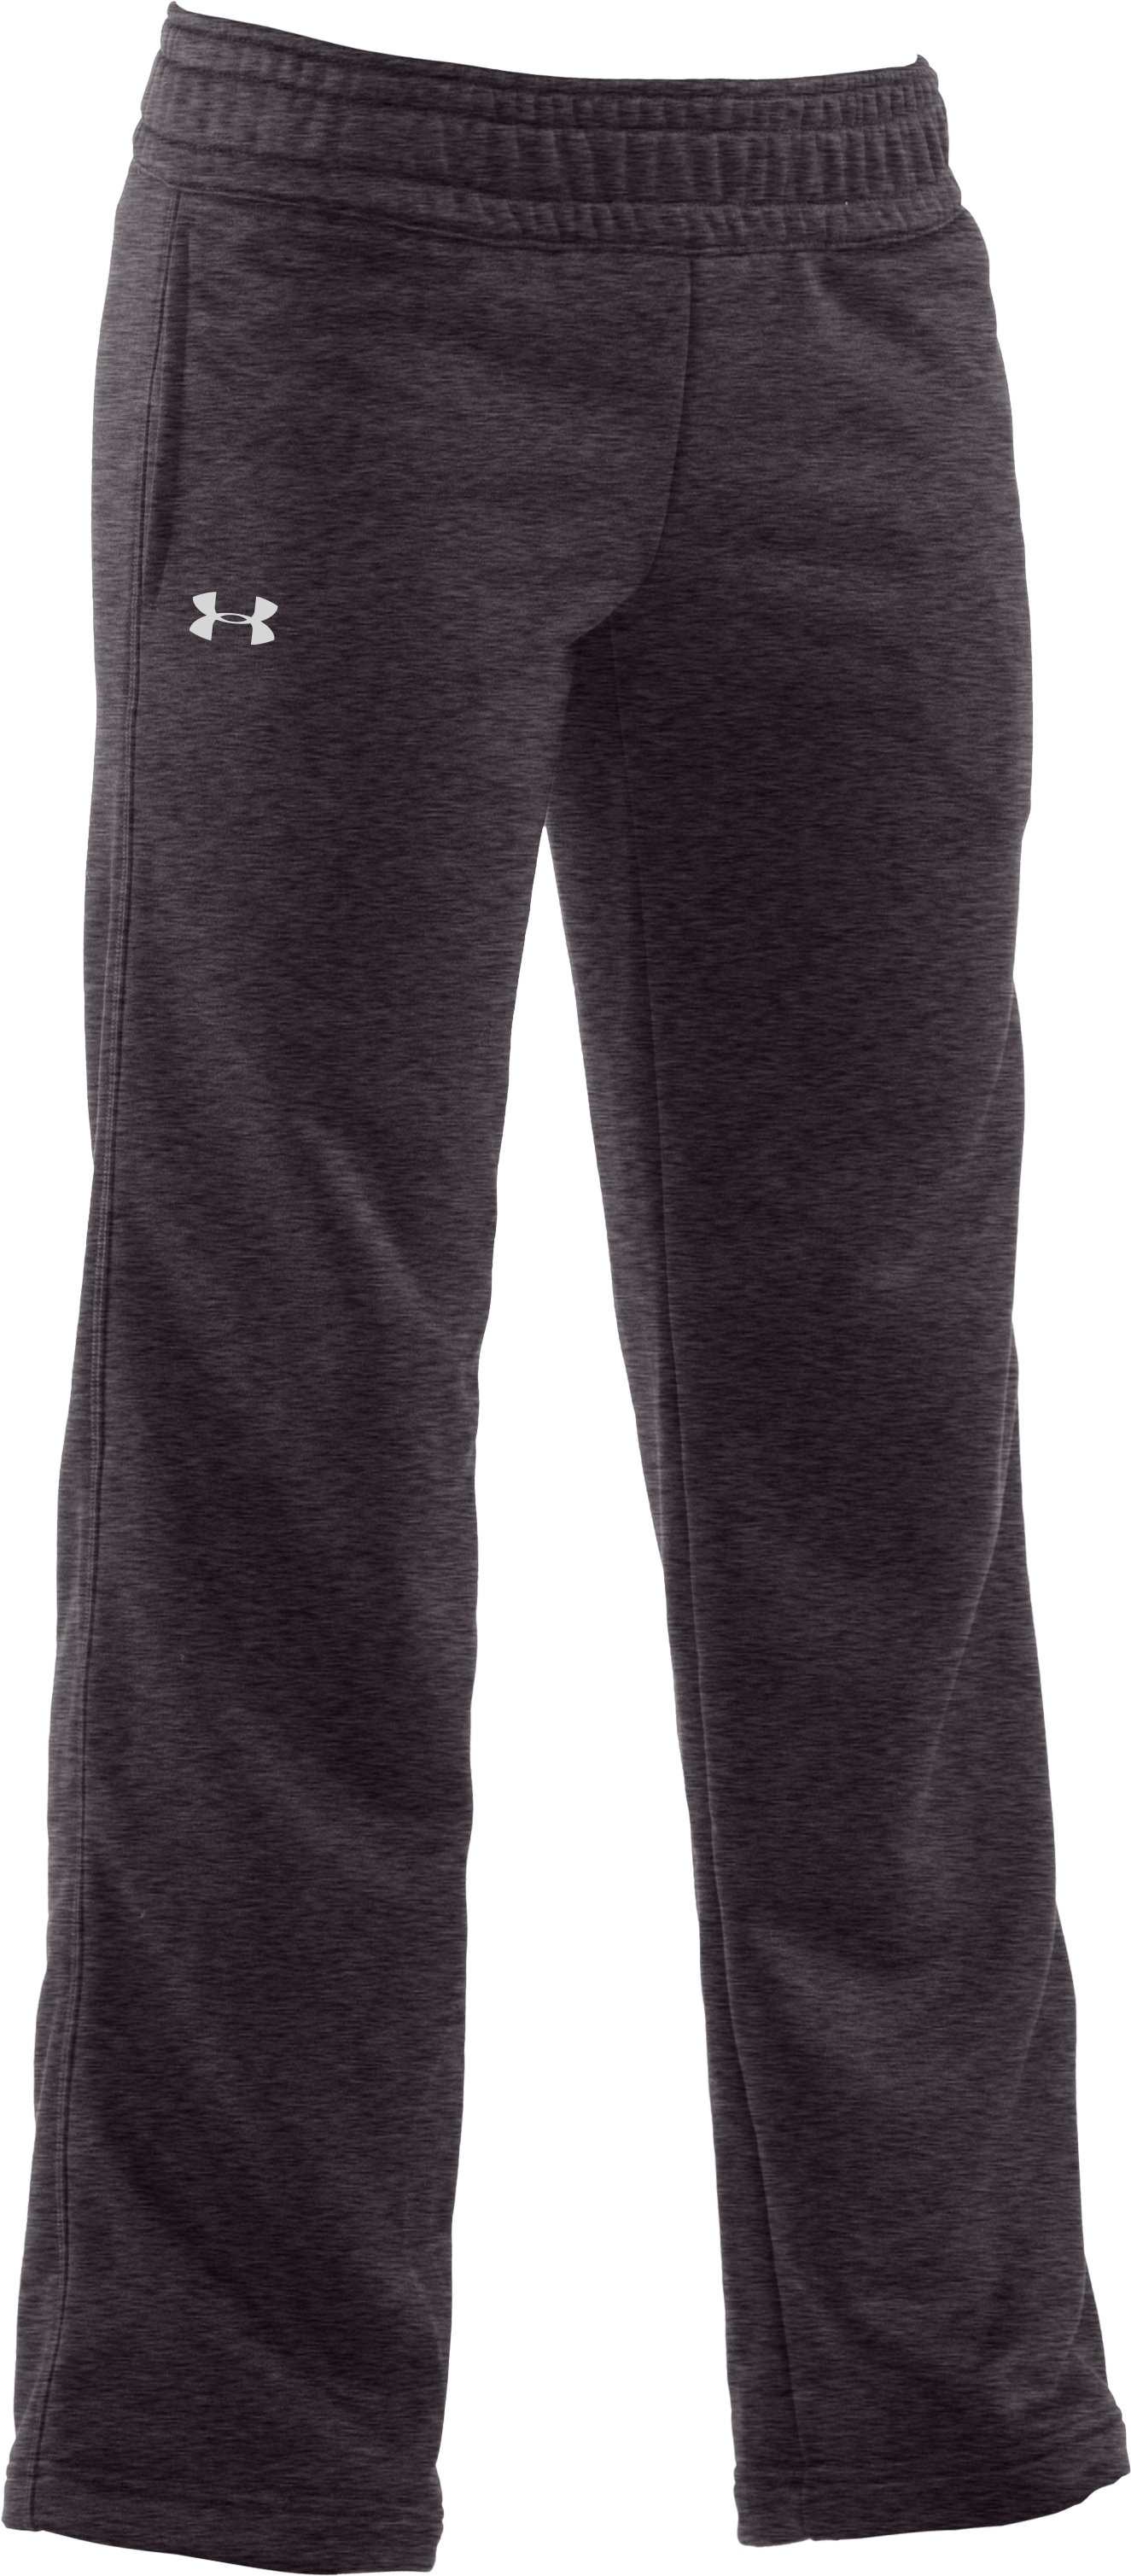 Girls' Armour® Fleece Pant, Carbon Heather, zoomed image